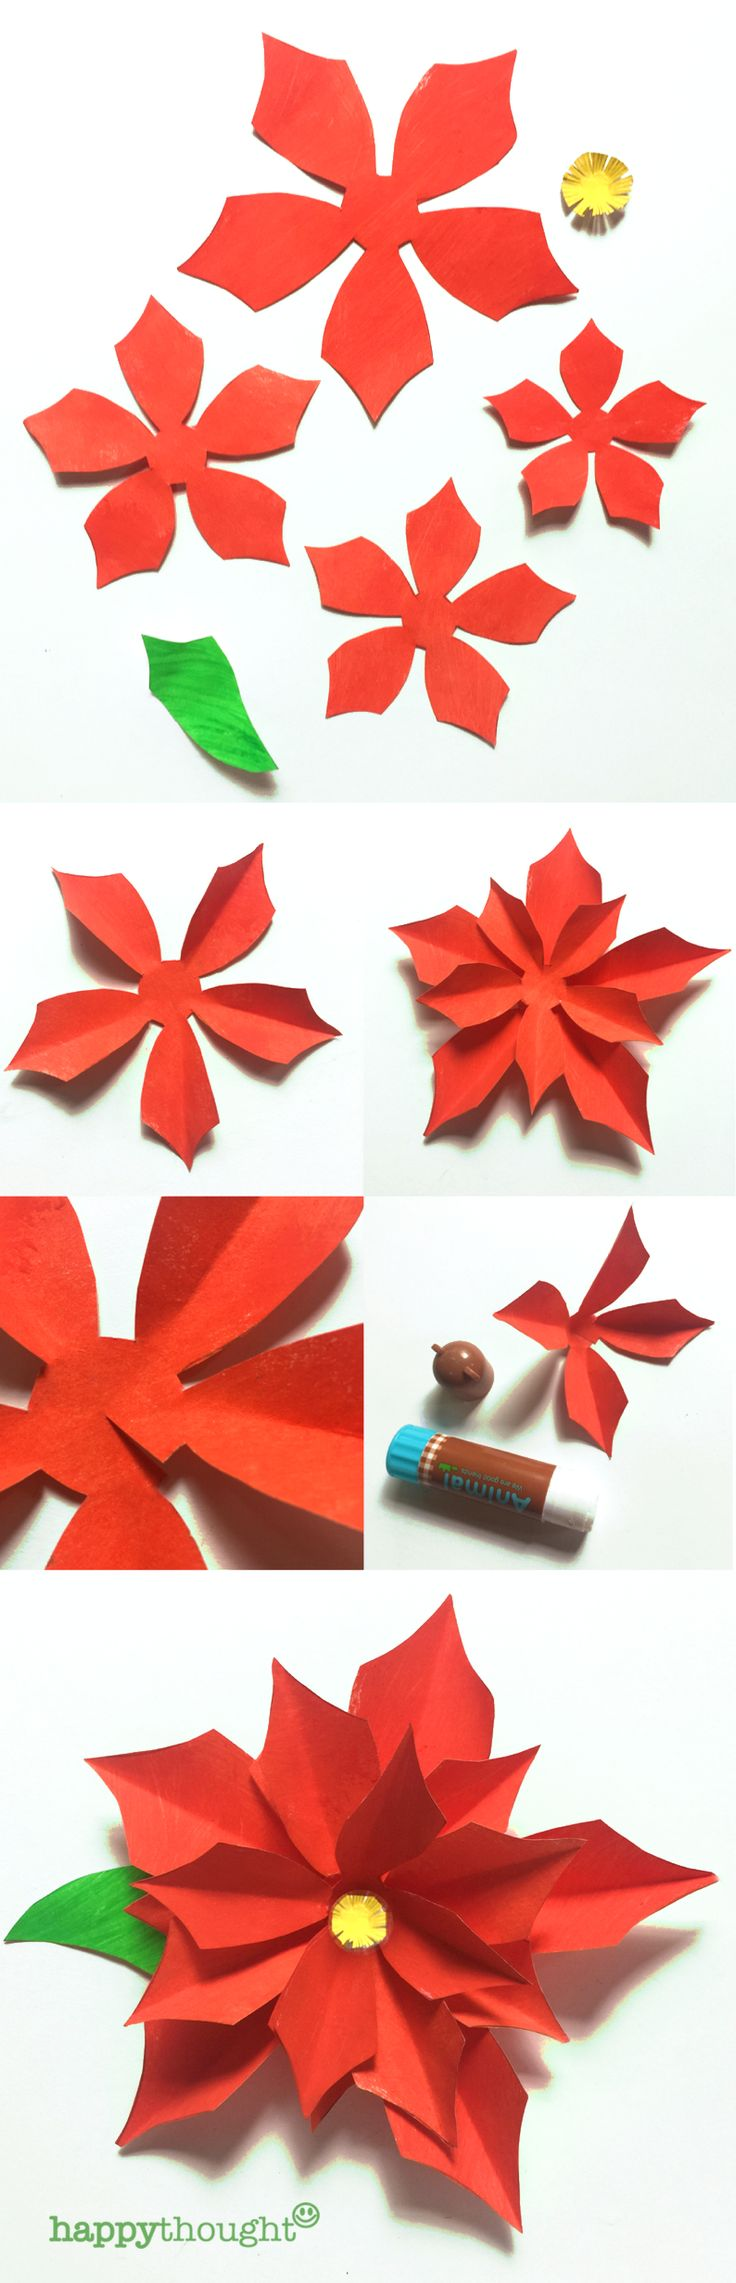 Poinsettia printable template and tutorial at https://happythought.co.uk/product/holiday-craft-activity-printables